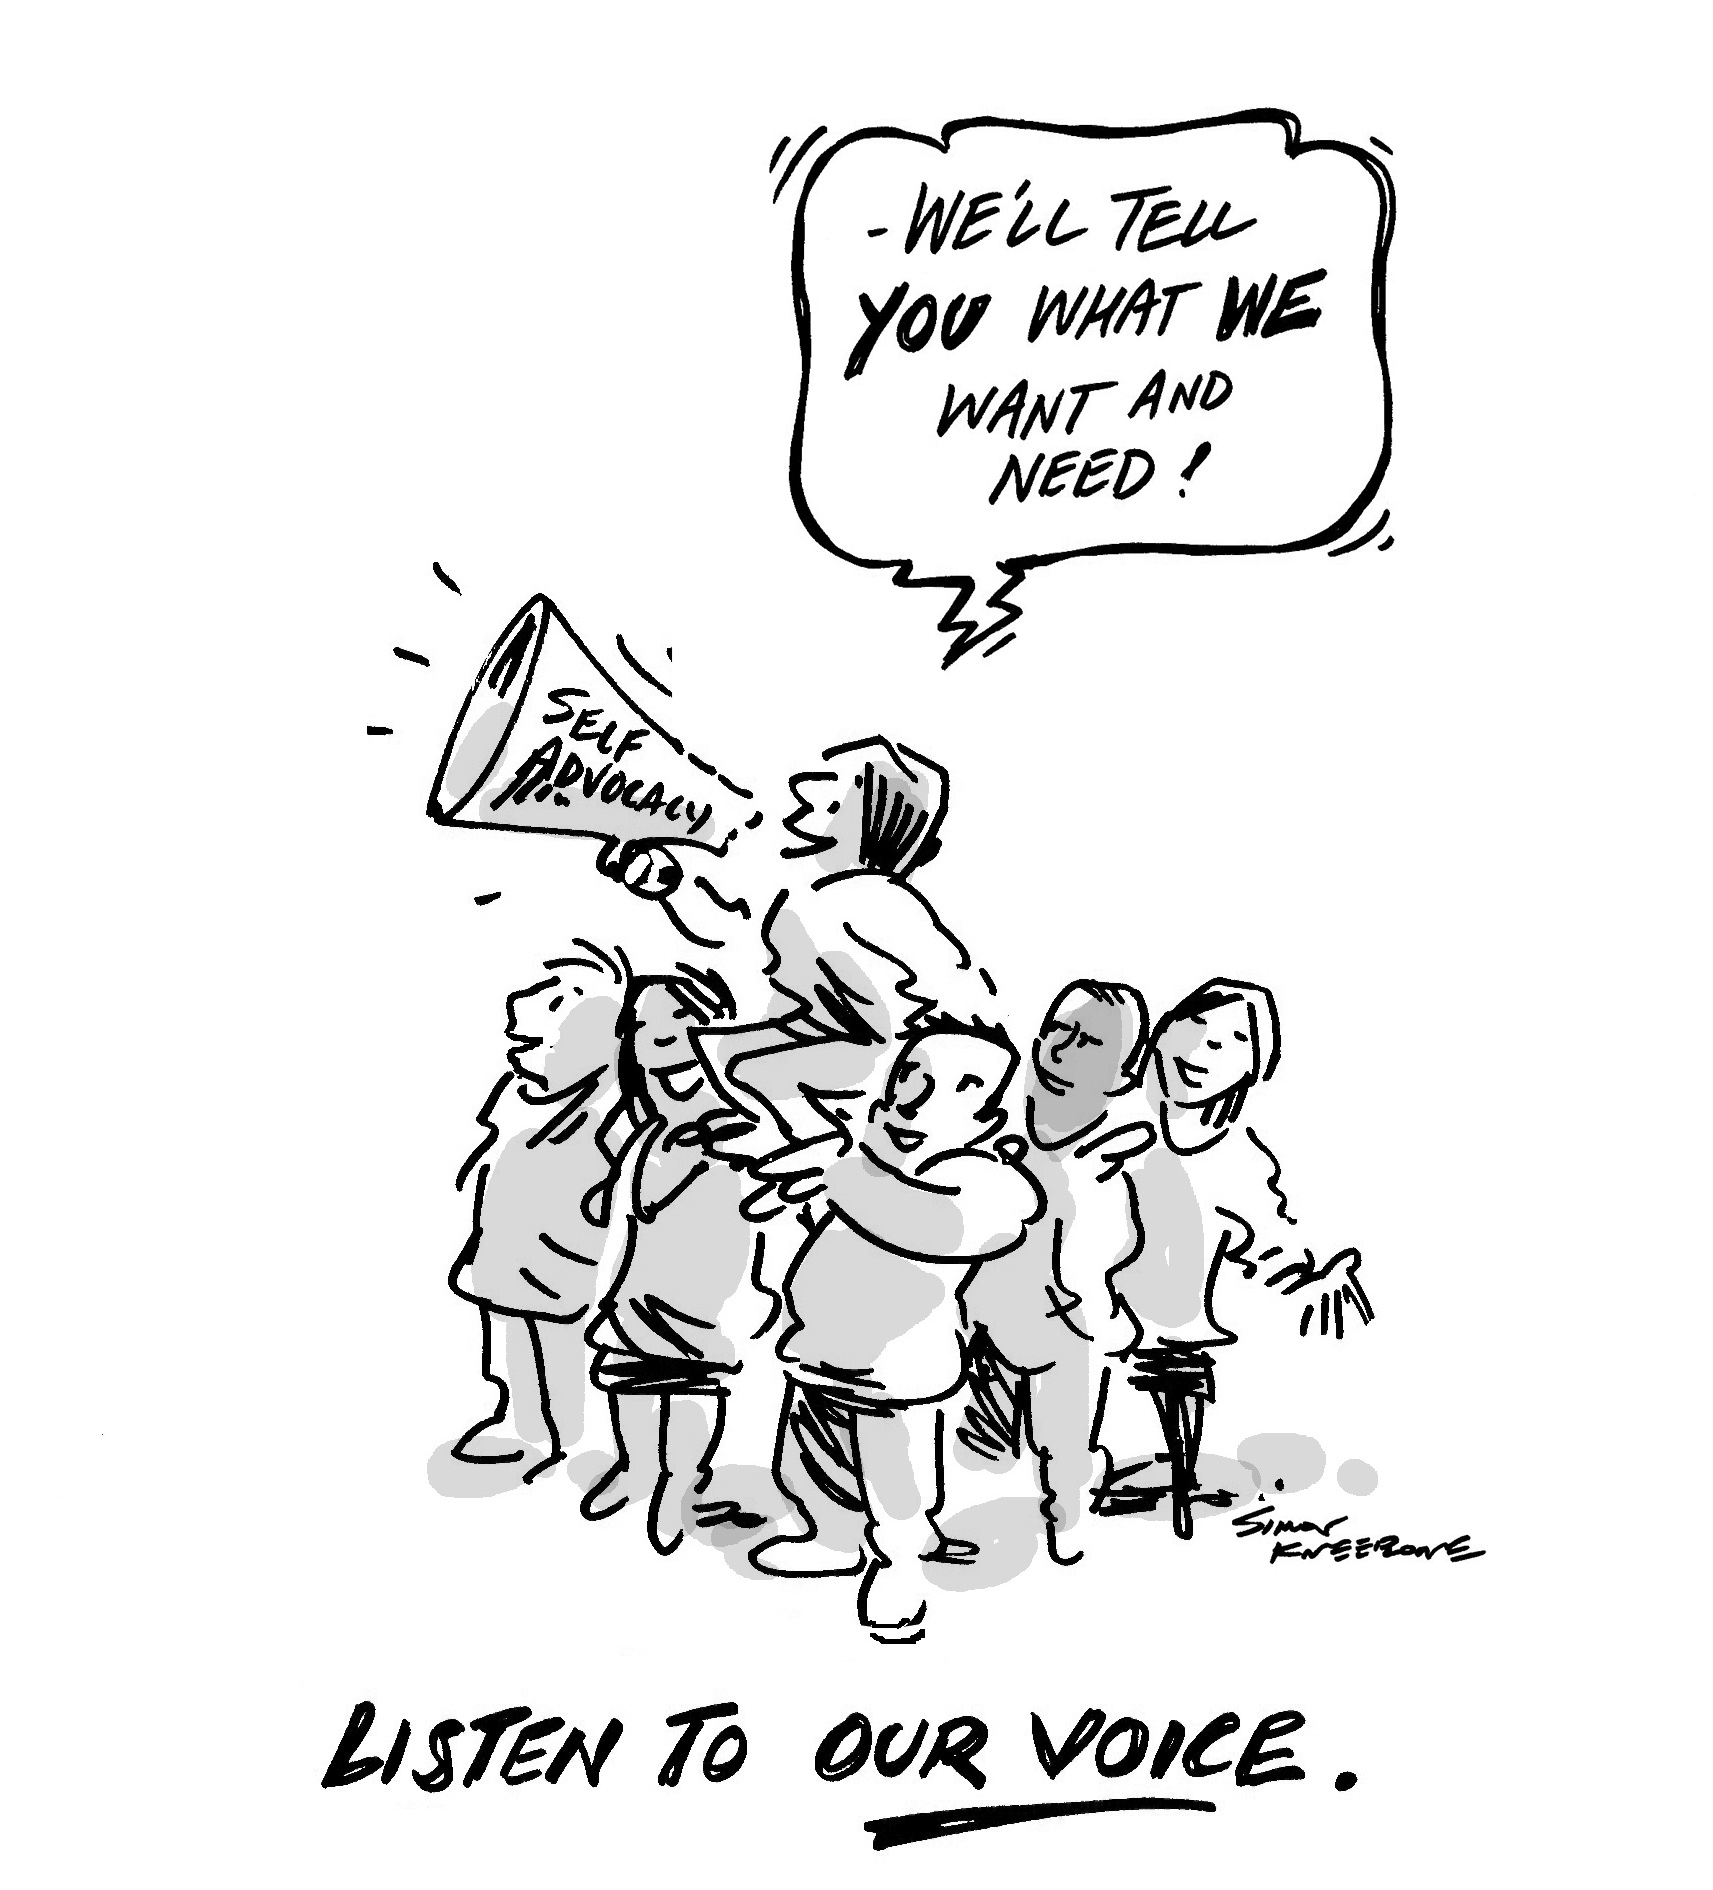 Our Voice cartoon says 'We'll tell you what we want and need!'